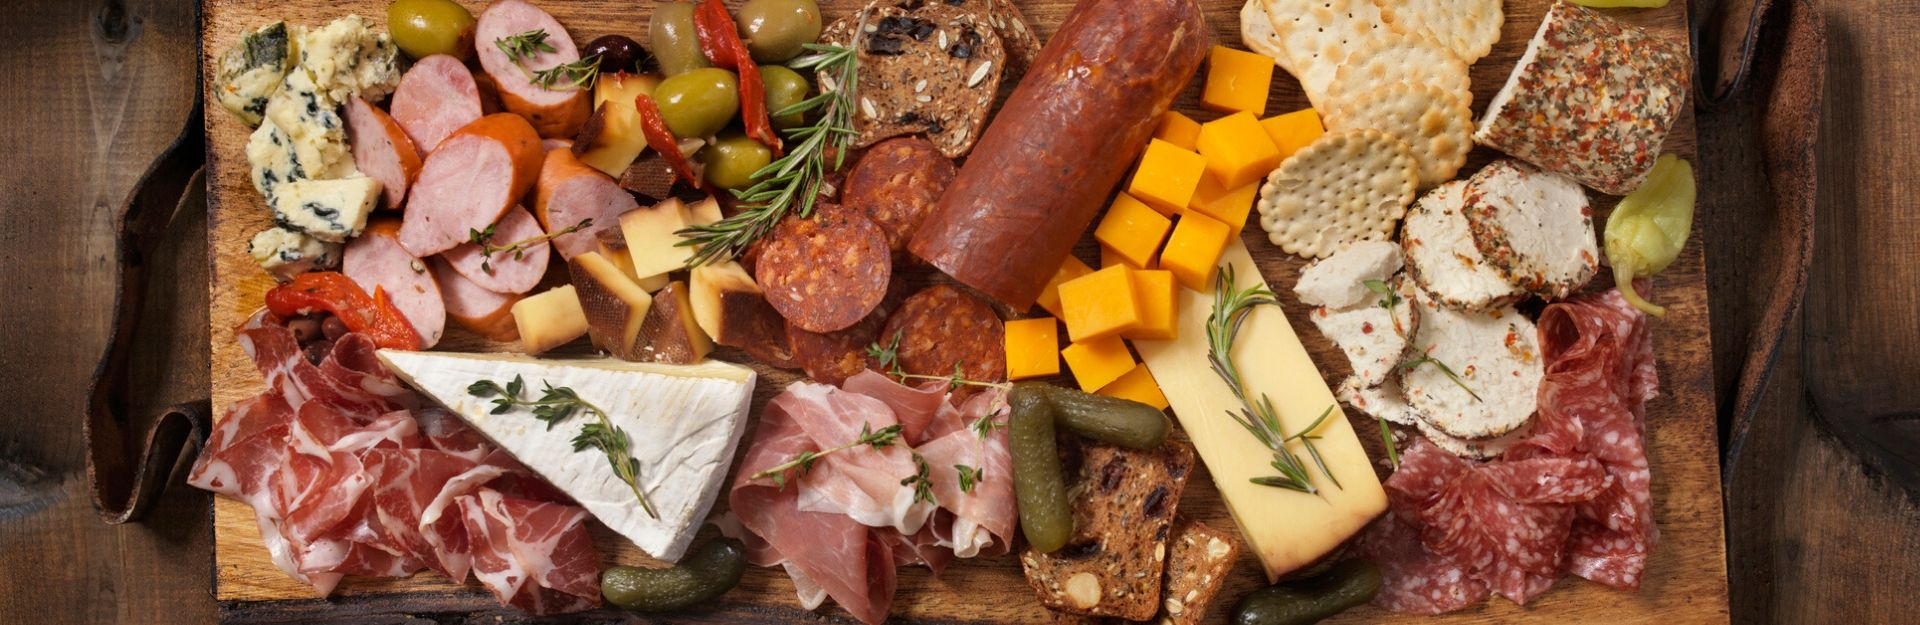 a beautifully arranged charcuterie board